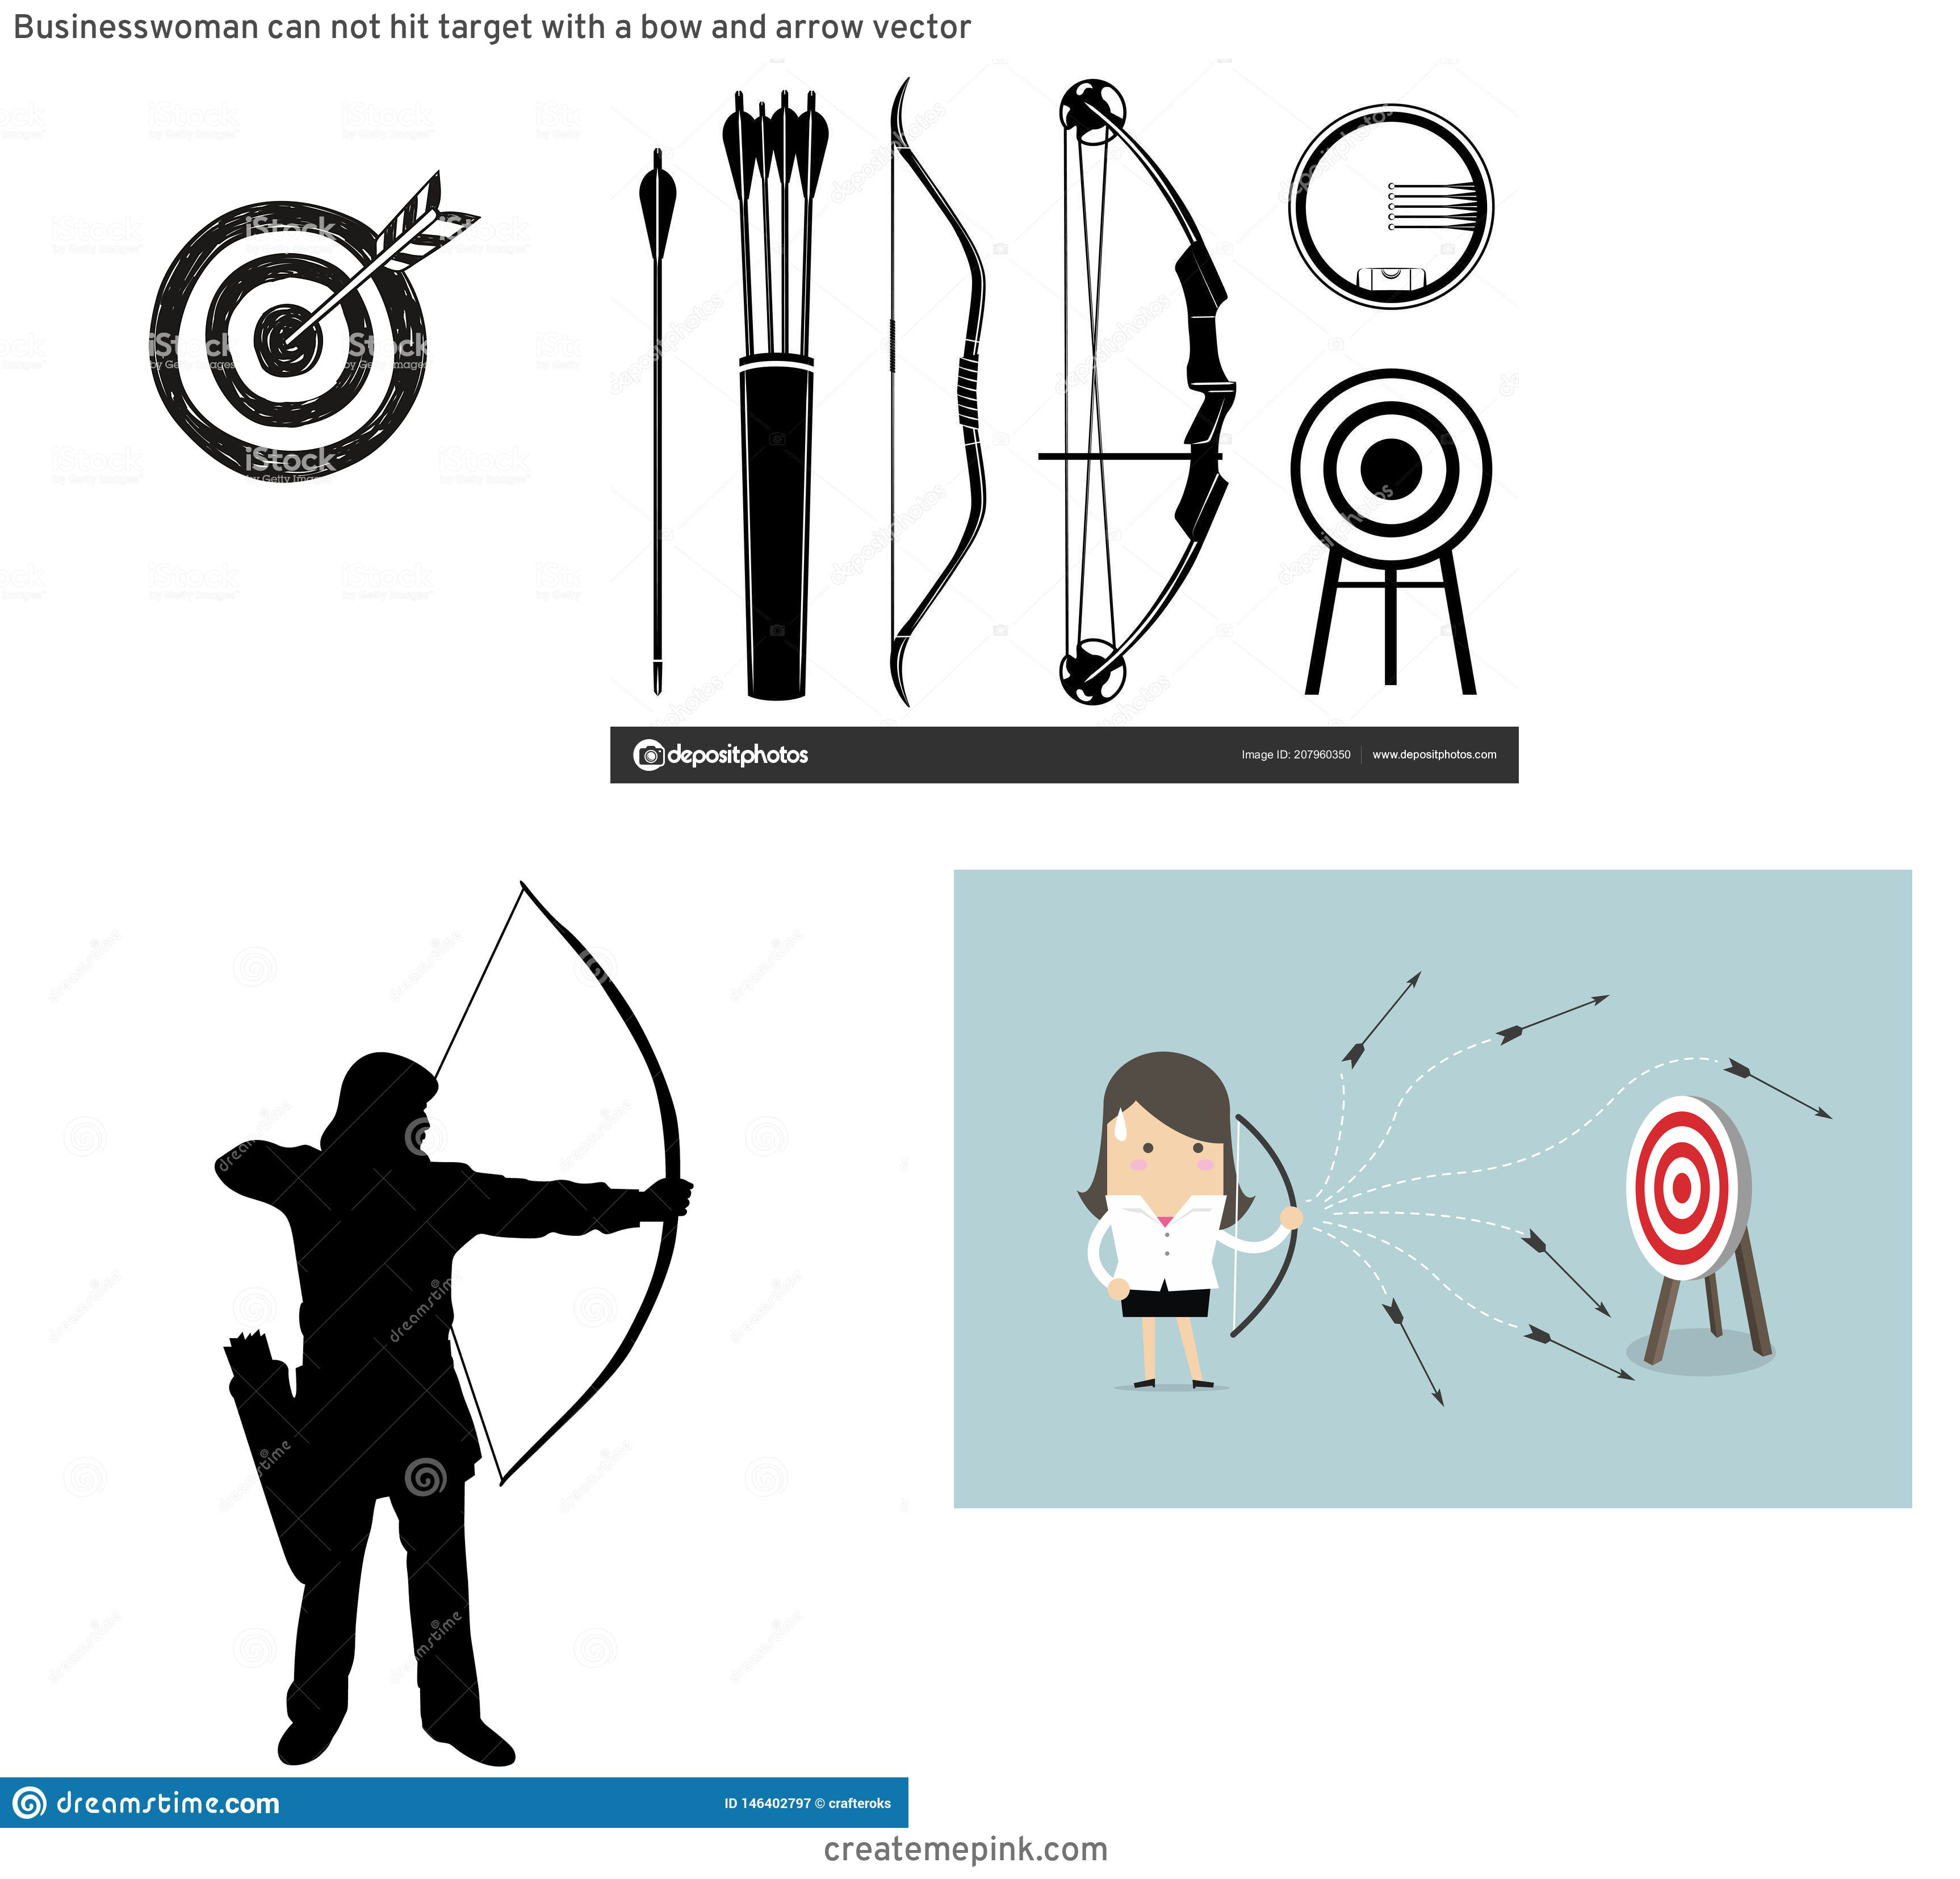 Target Bow And Arrow Vector: Businesswoman Can Not Hit Target With A Bow And Arrow Vector